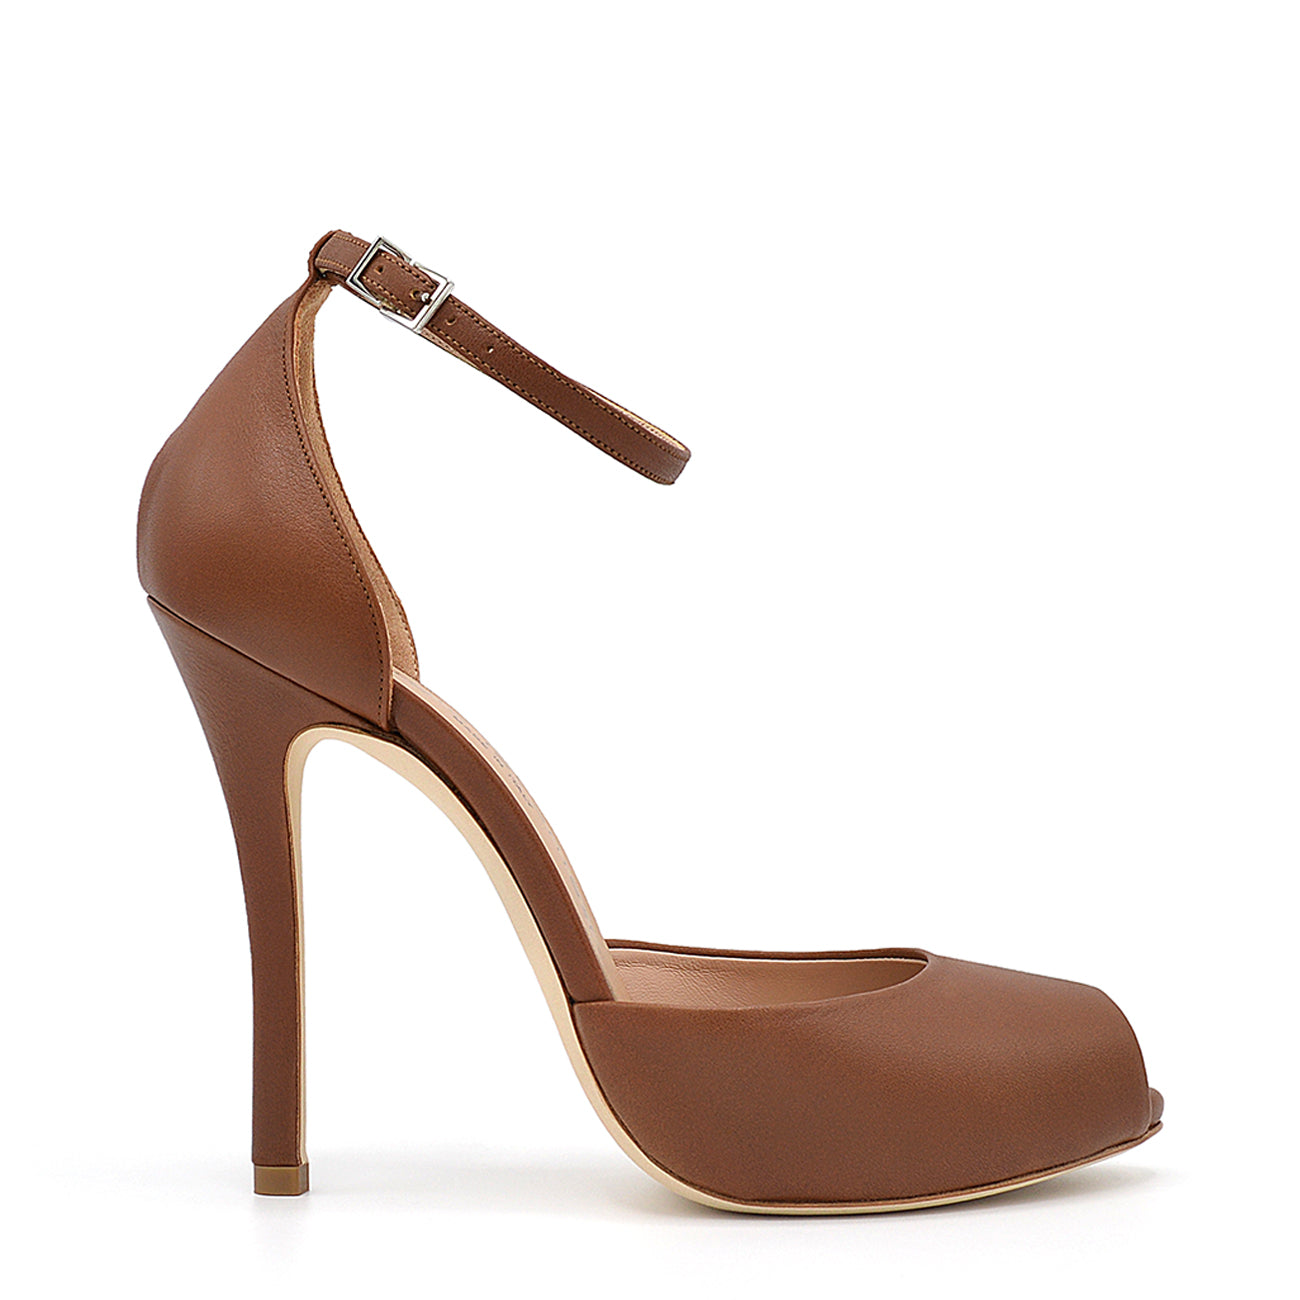 Petra. <br> Ankle strap stiletto heel fox brown nappa leather platform sandals